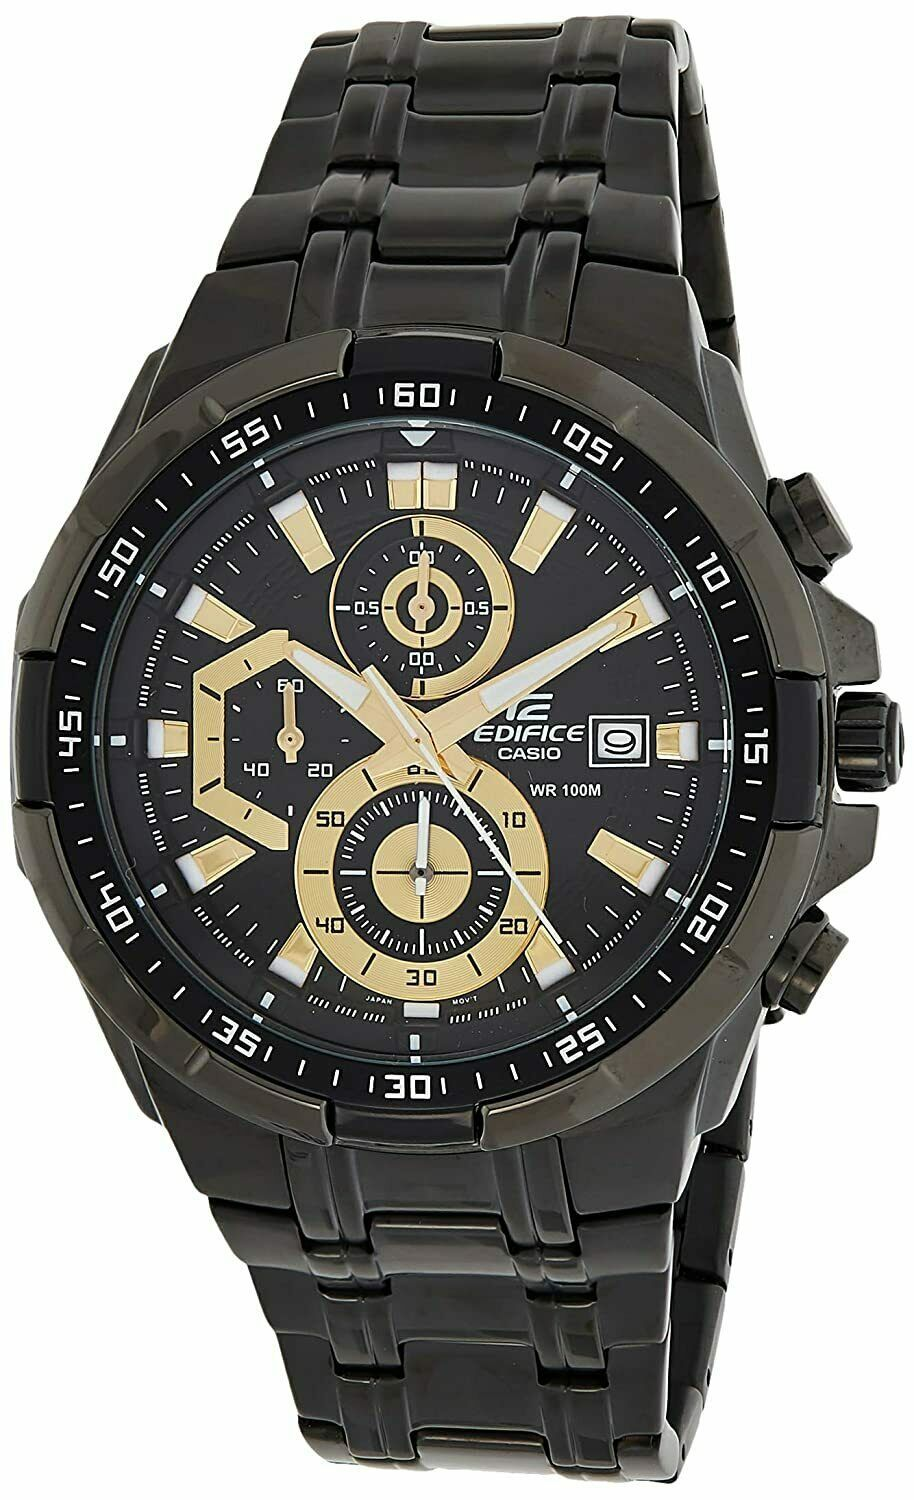 Primary image for Casio Edifice Stopwatch Men's Chronograph EFR-539BK-1AVUDF (EX187)